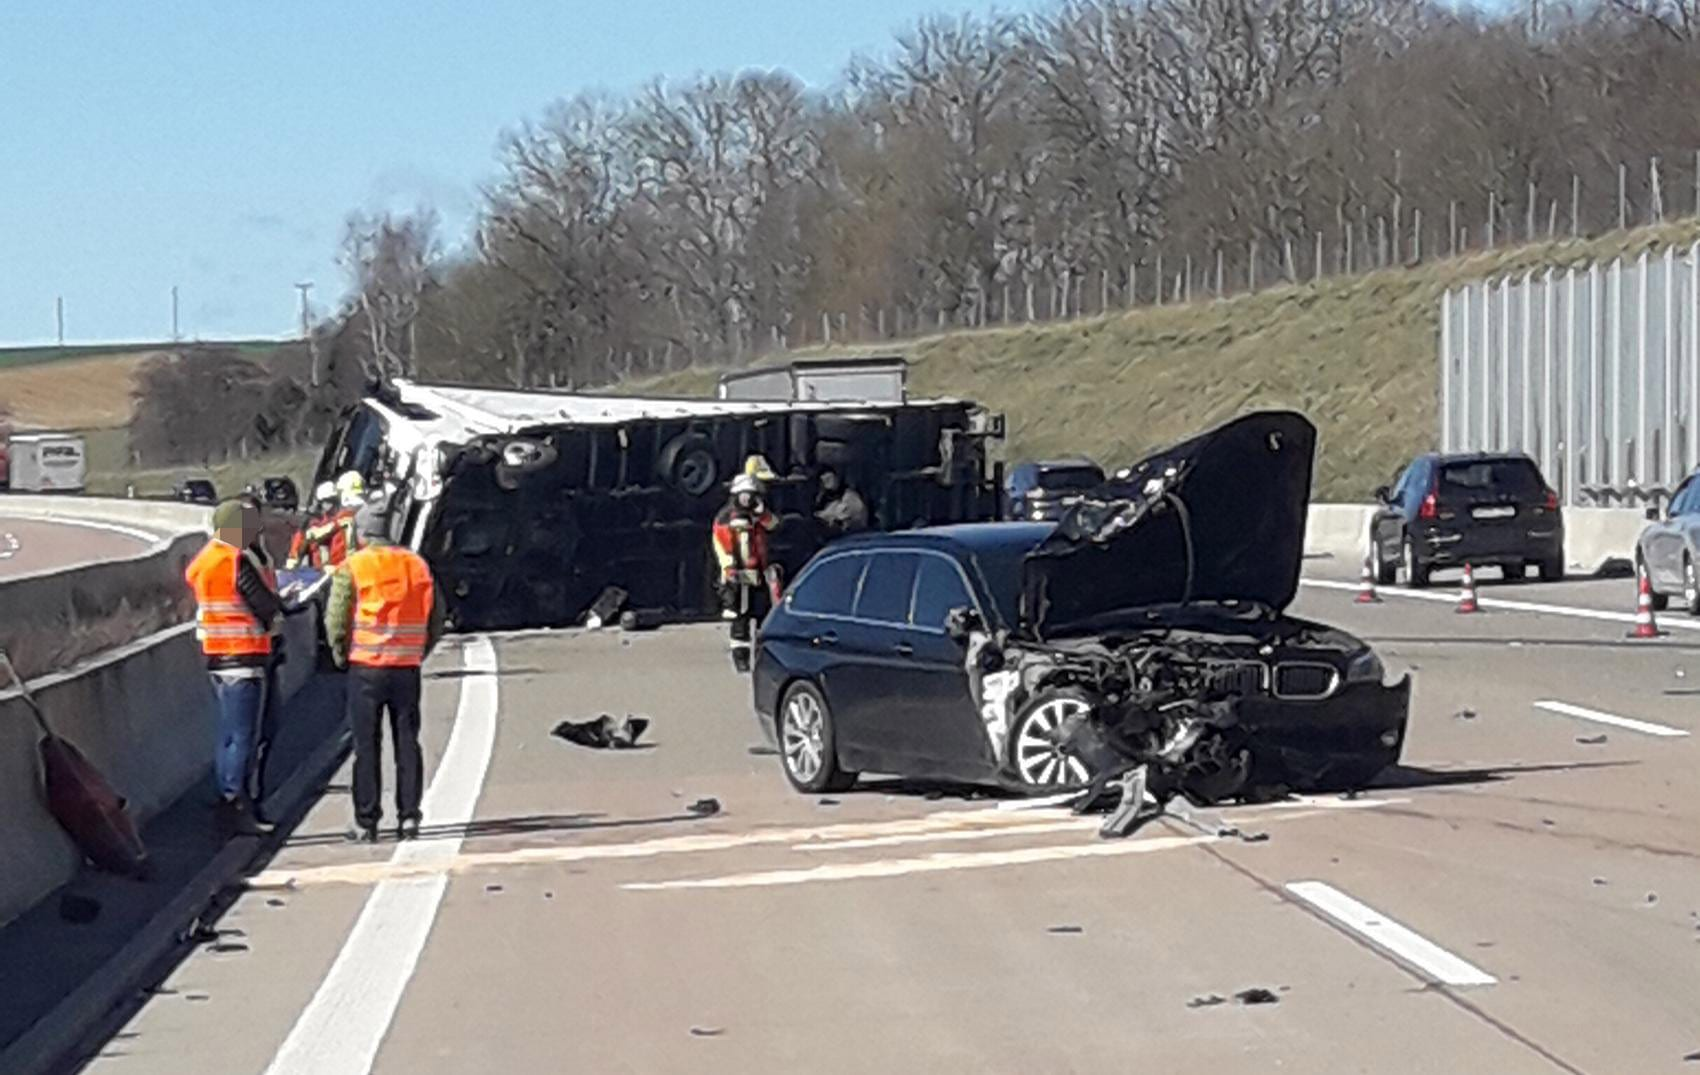 Lkw Pkw Unfall A8 Limbach 13032020 2